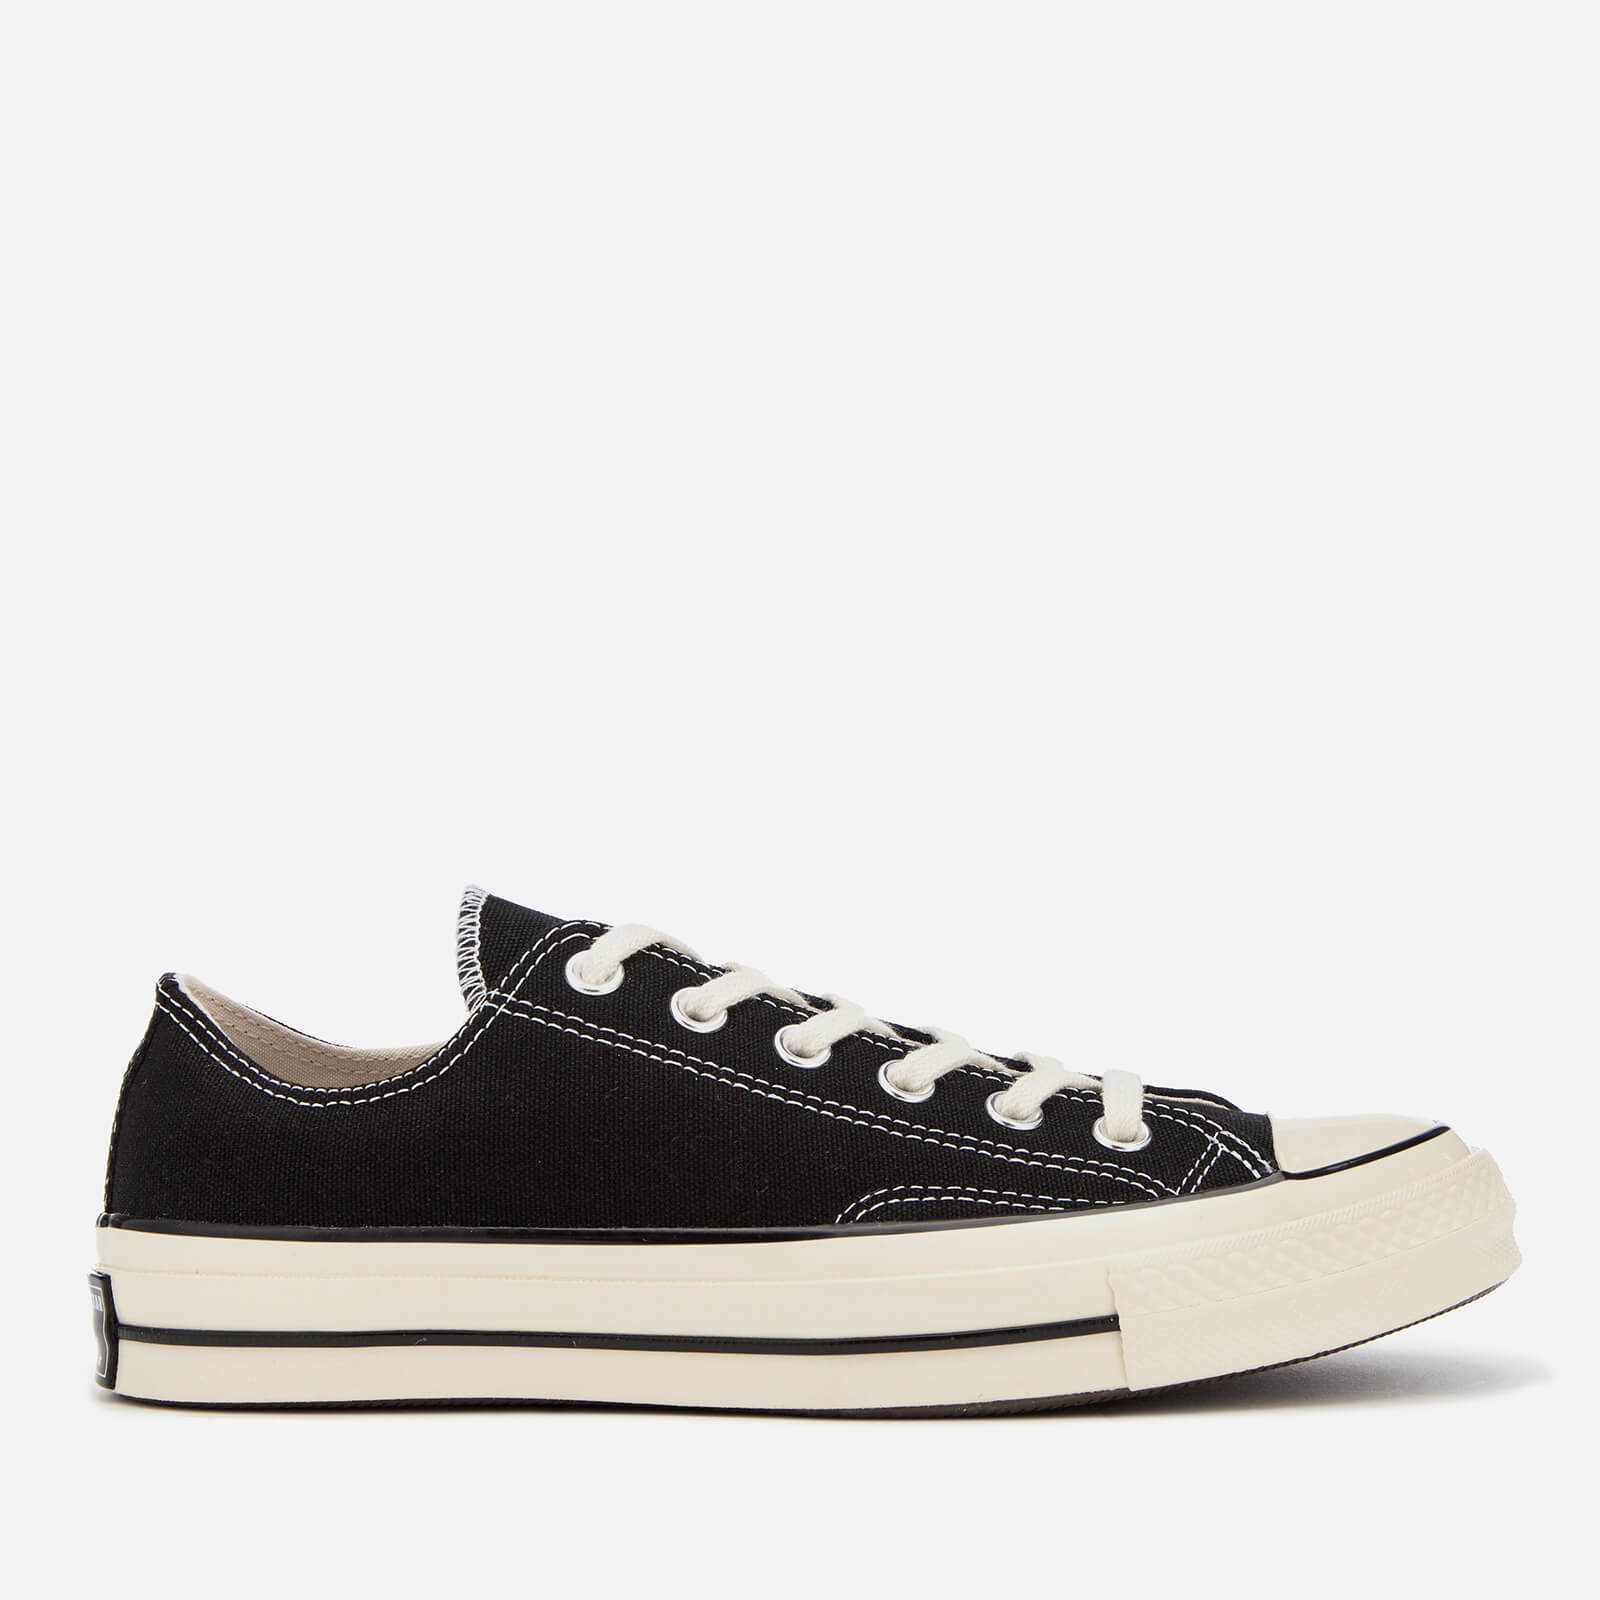 Converse Chuck 70 Ox Trainers - Black/Black/Egret - UK 8 - Black from Converse